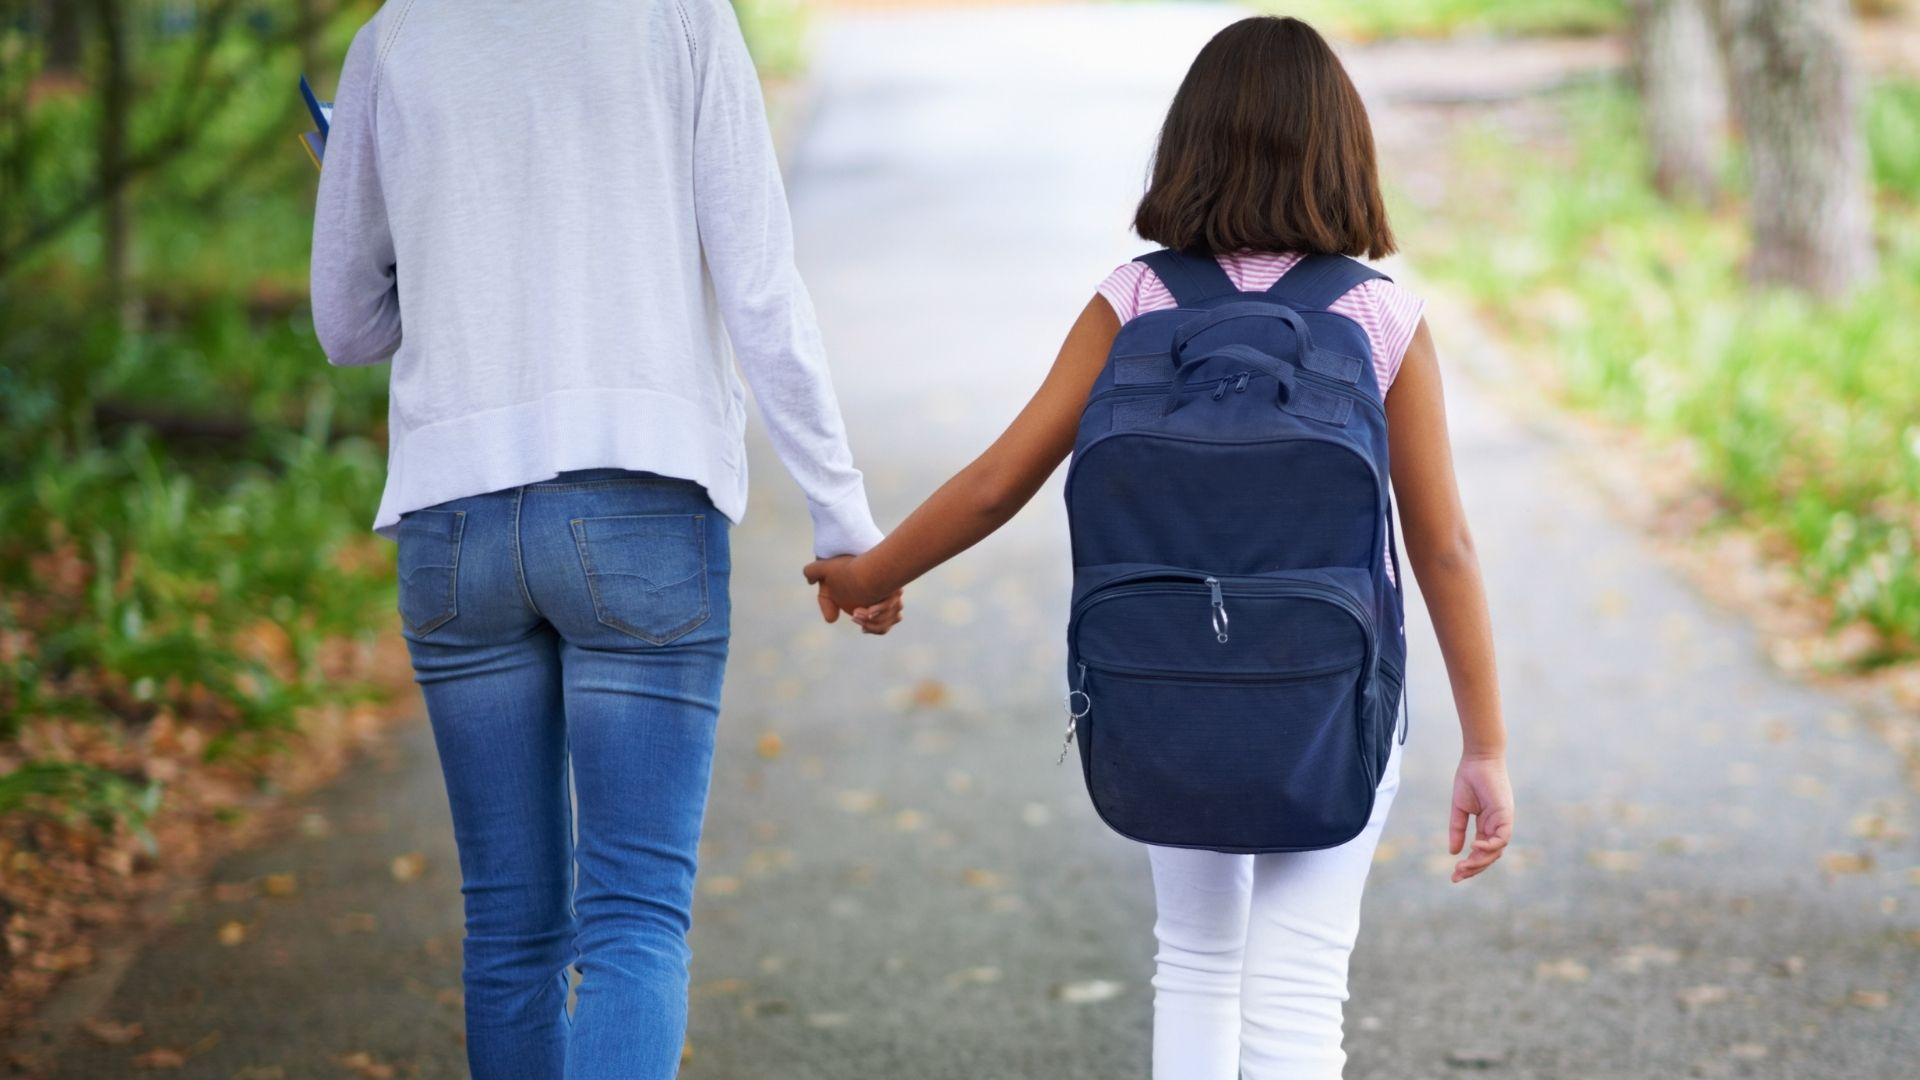 Adult walking with child